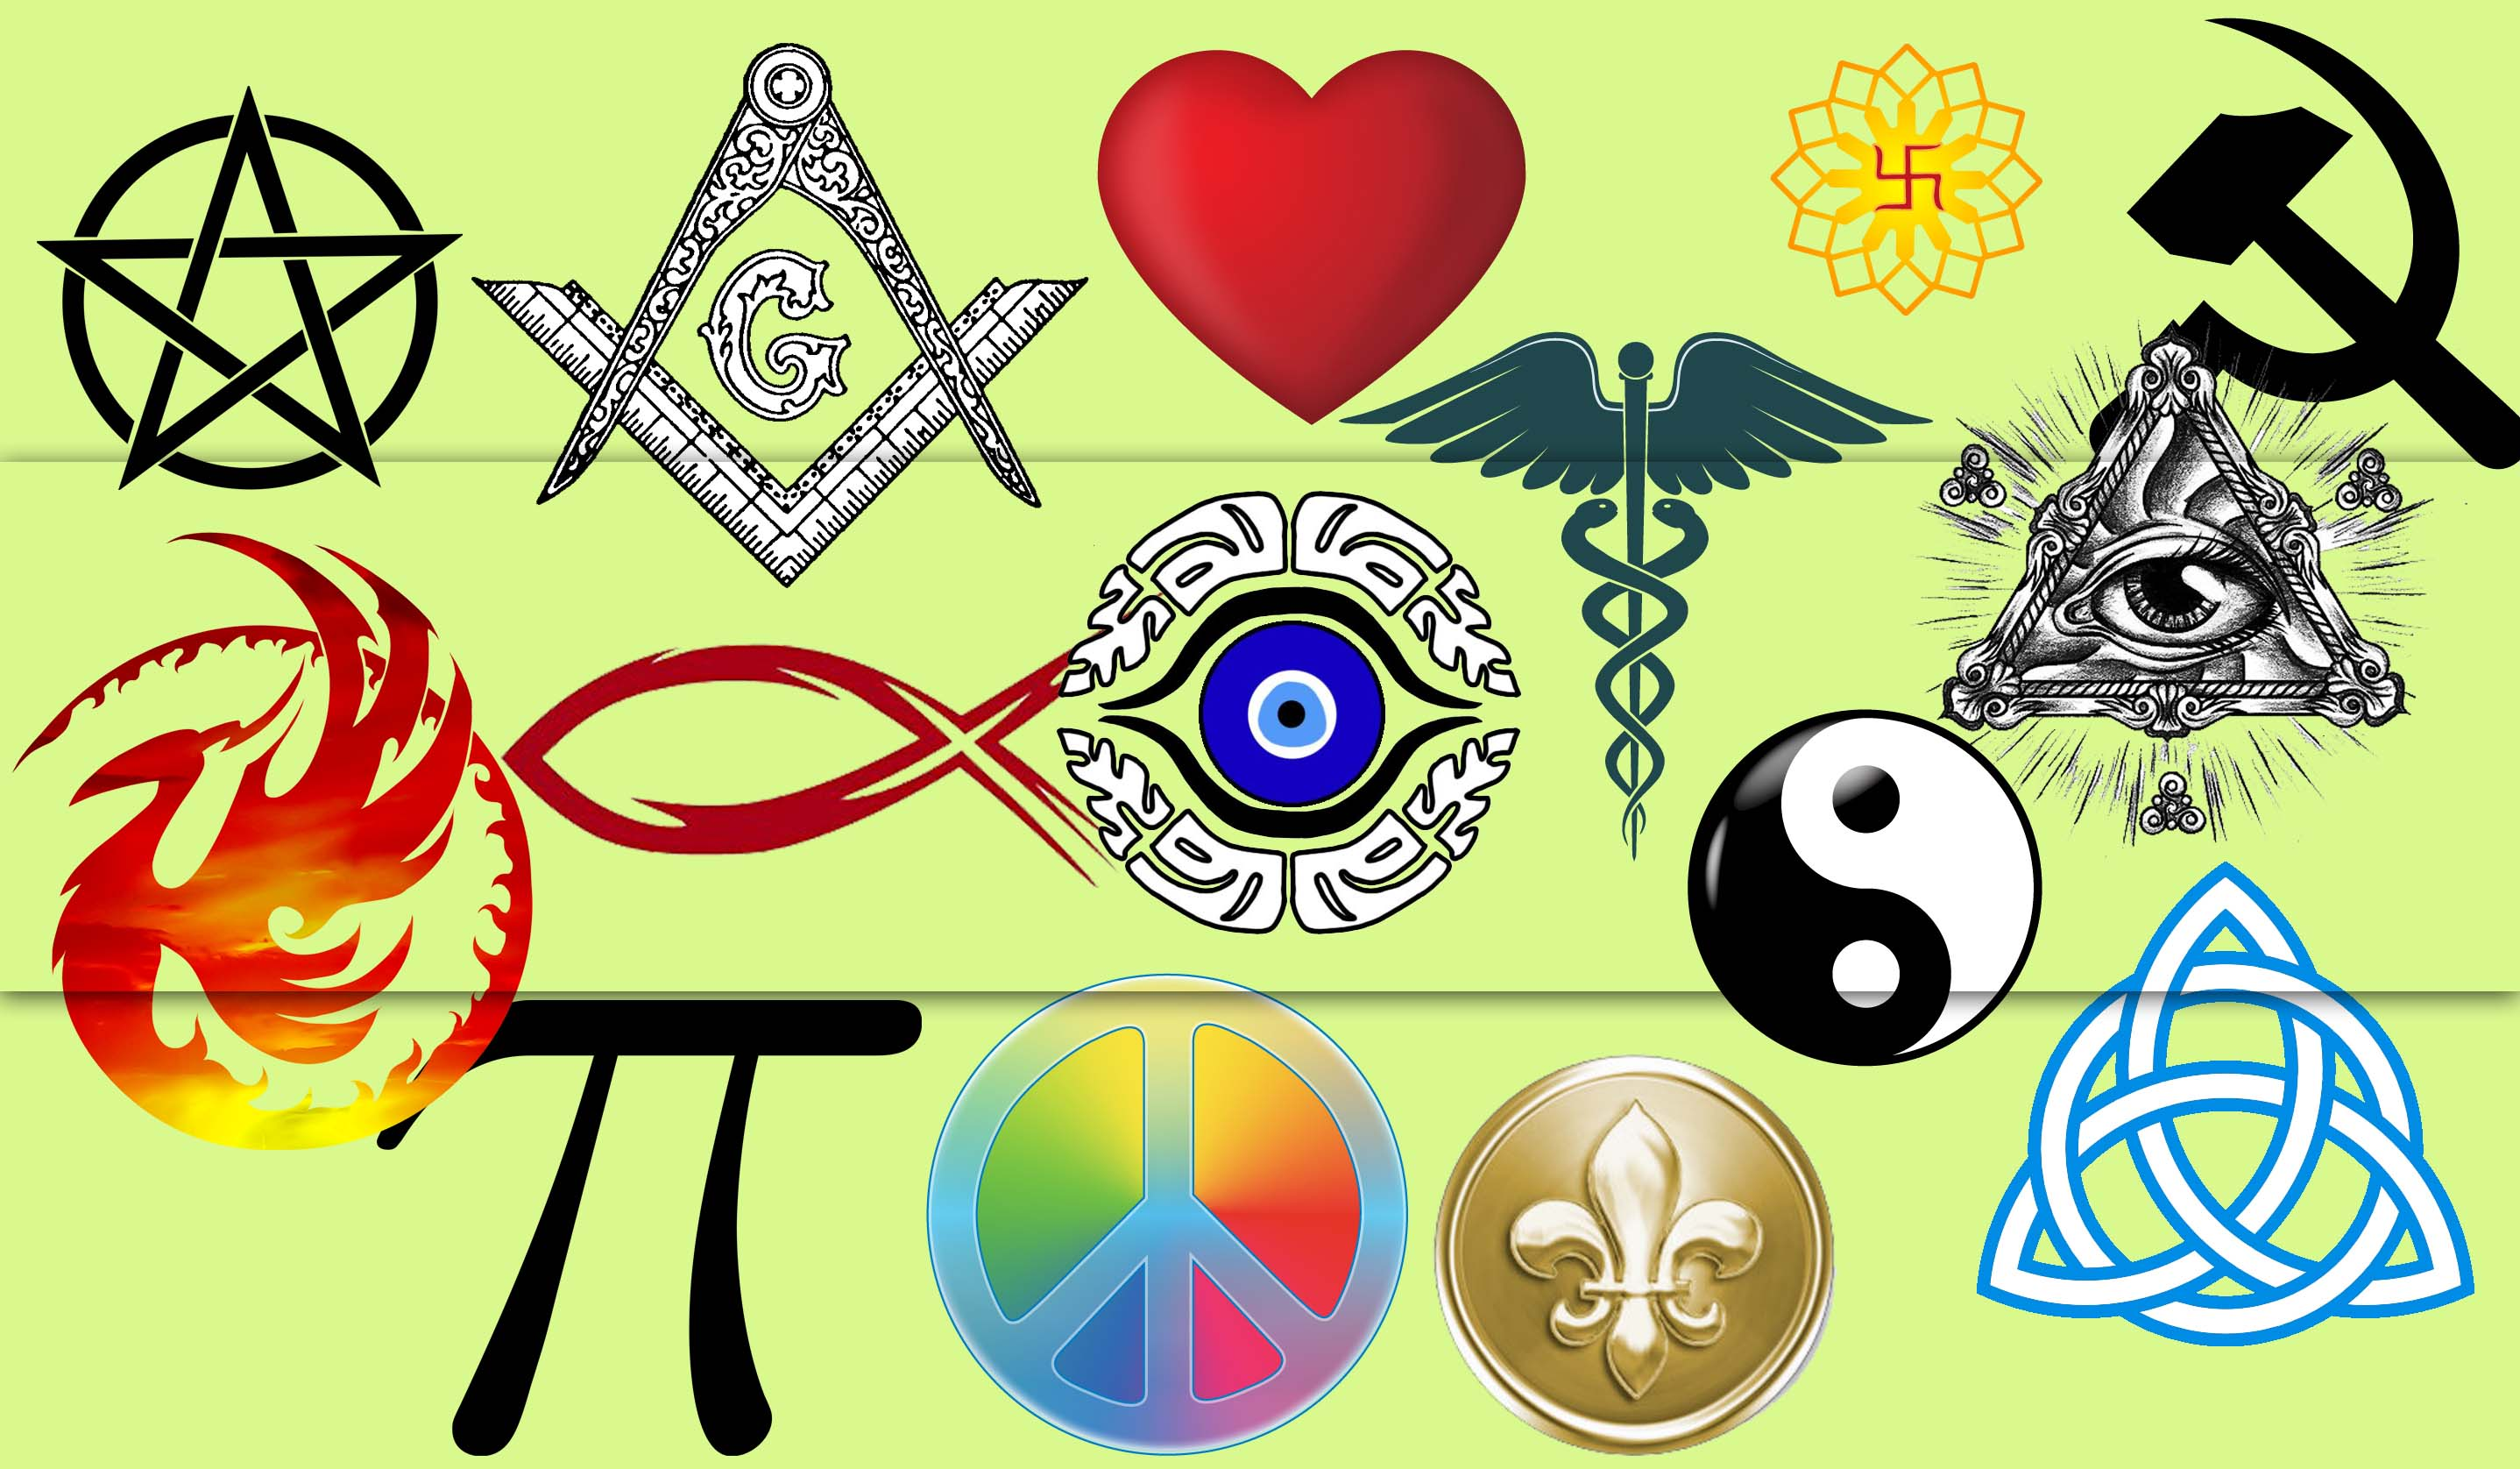 Well Known Symbols And Their Meanings Spirit Connection